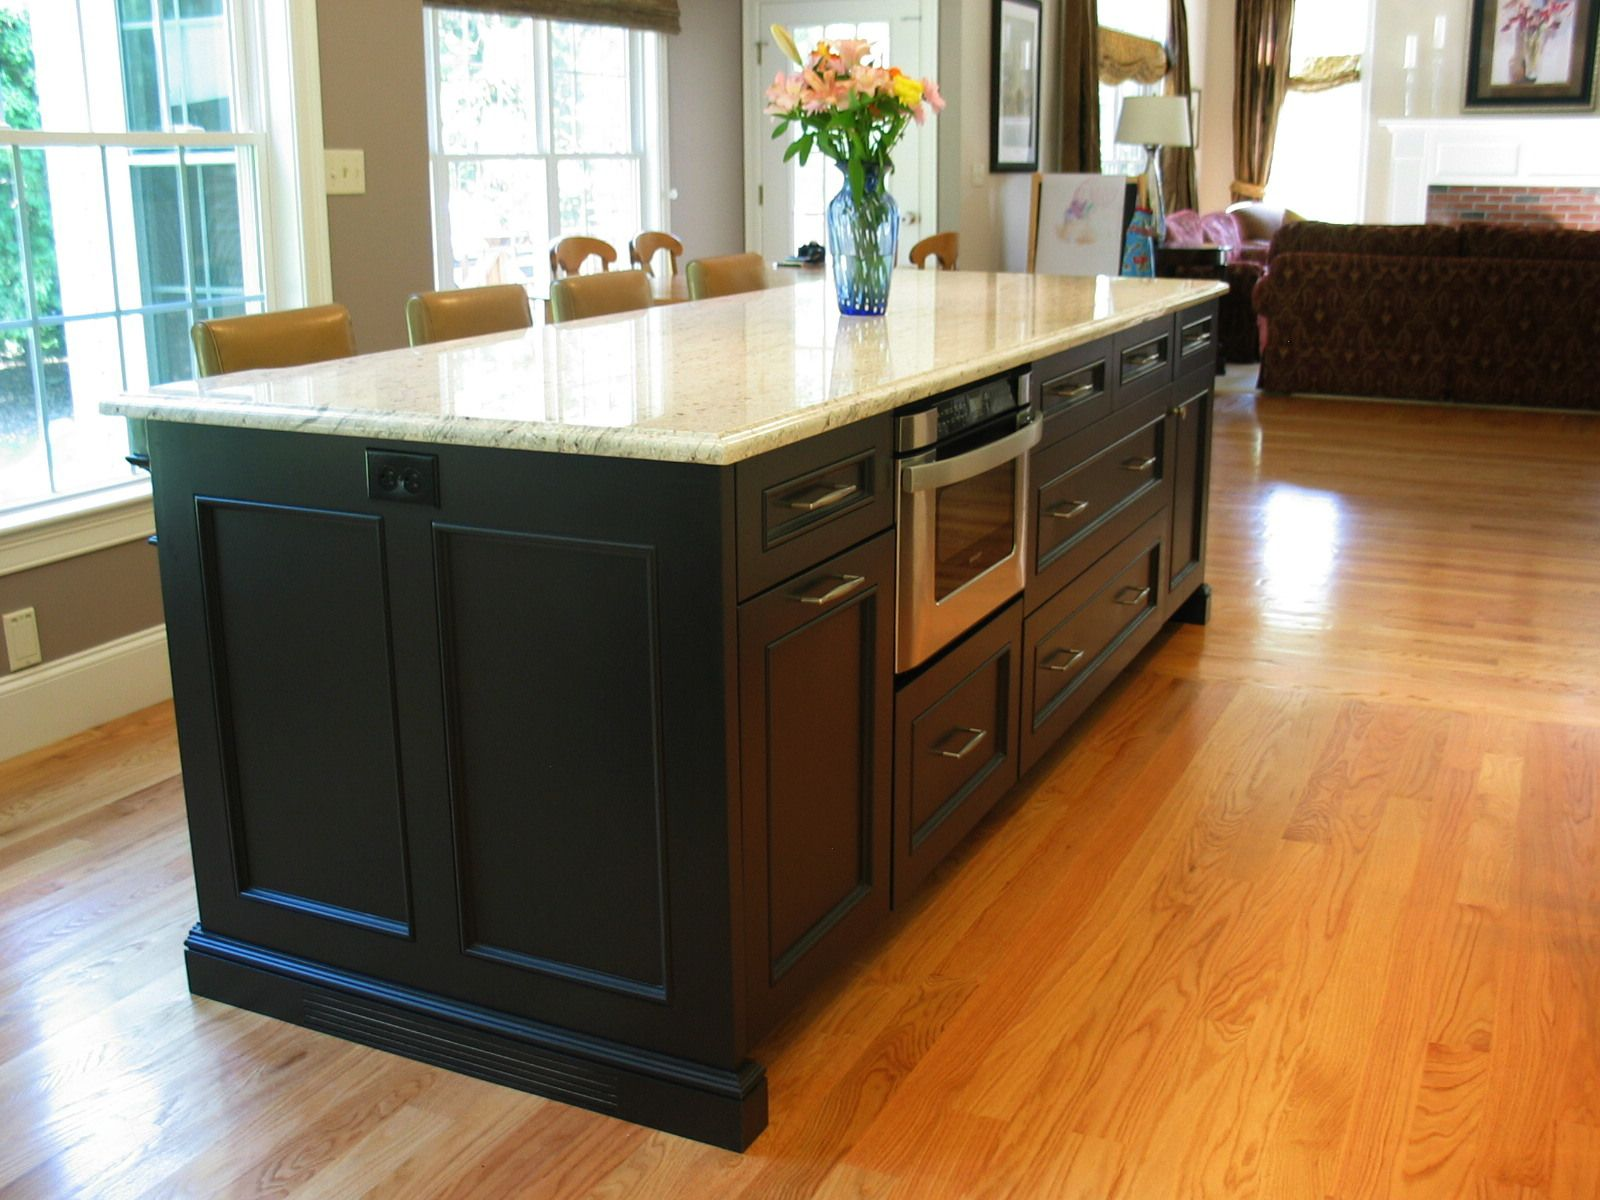 Rustic Kitchen Design Wellesley MA